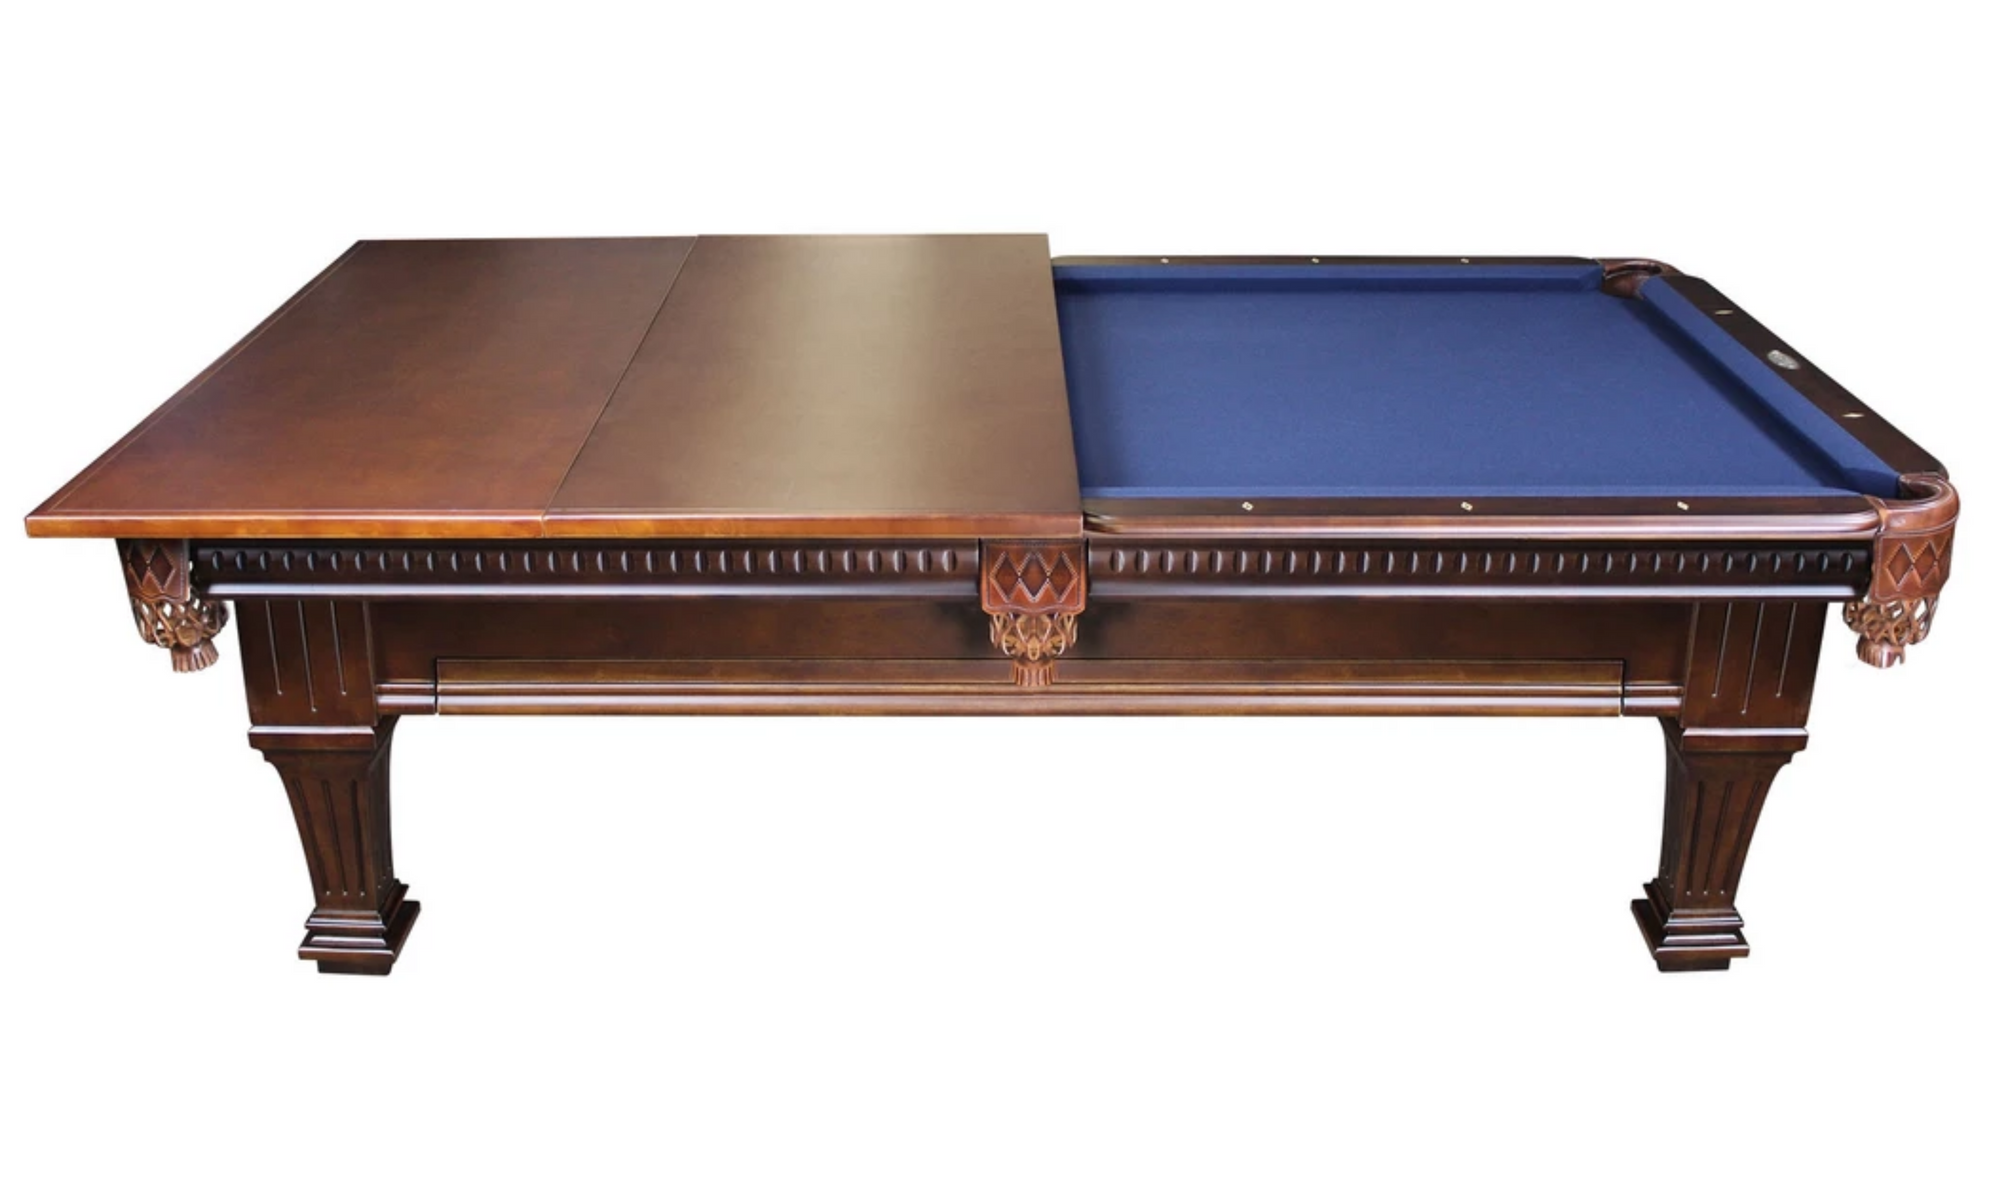 THE RAMSEY POOL TABLE WITH STORAGE DRAWER